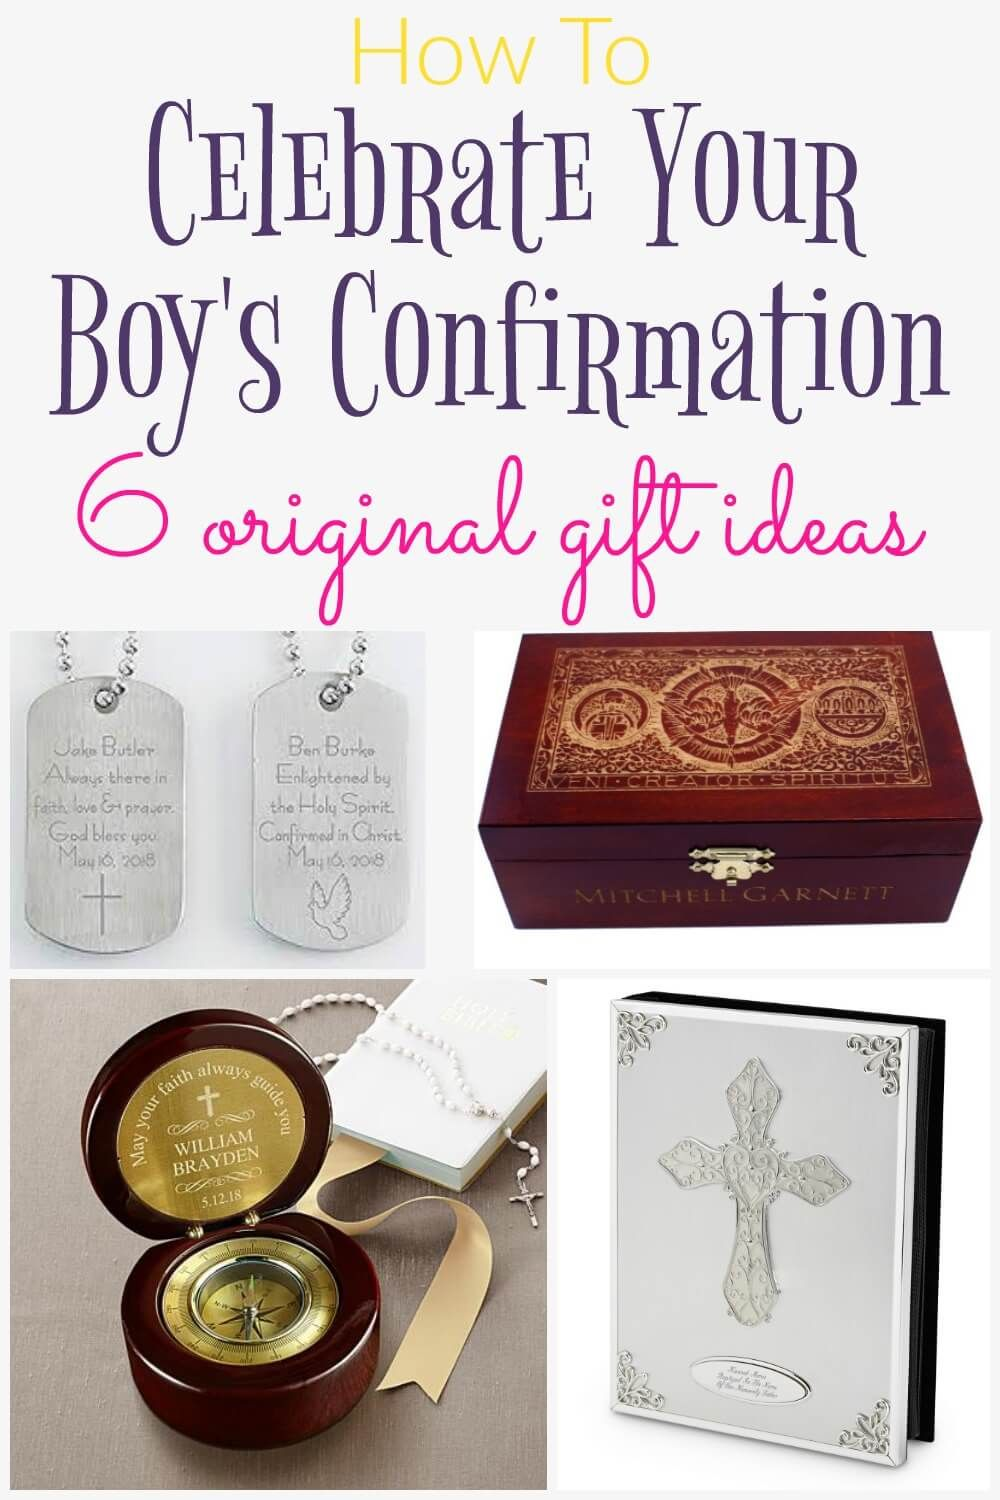 What Is A Good Confirmation Gift For A Boy Ideas